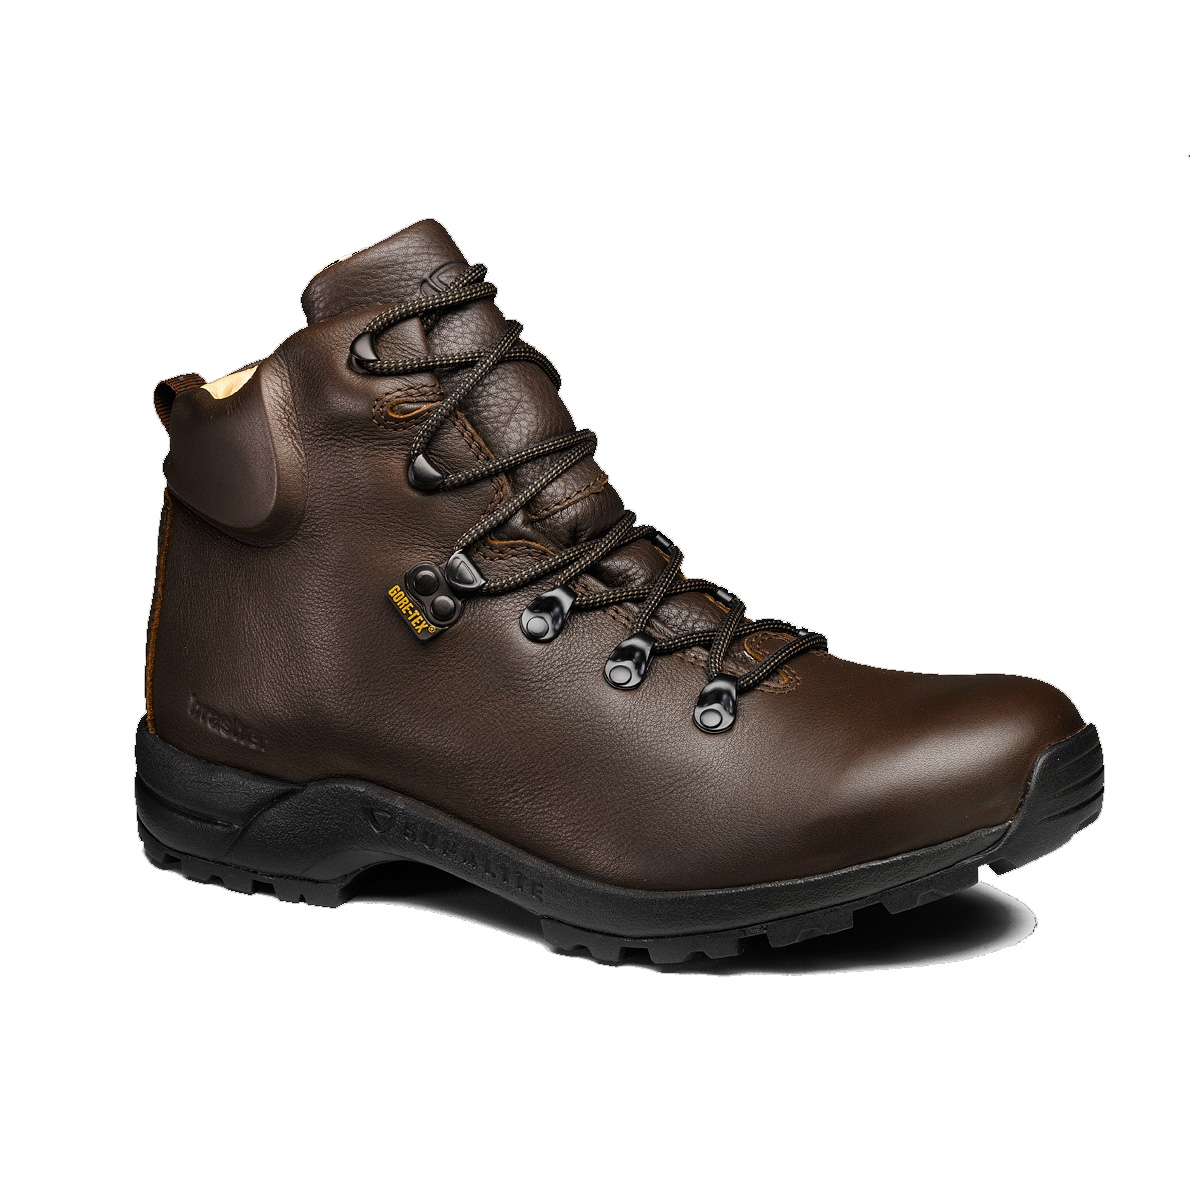 brasher supalite ii gtx walking boots with pittards